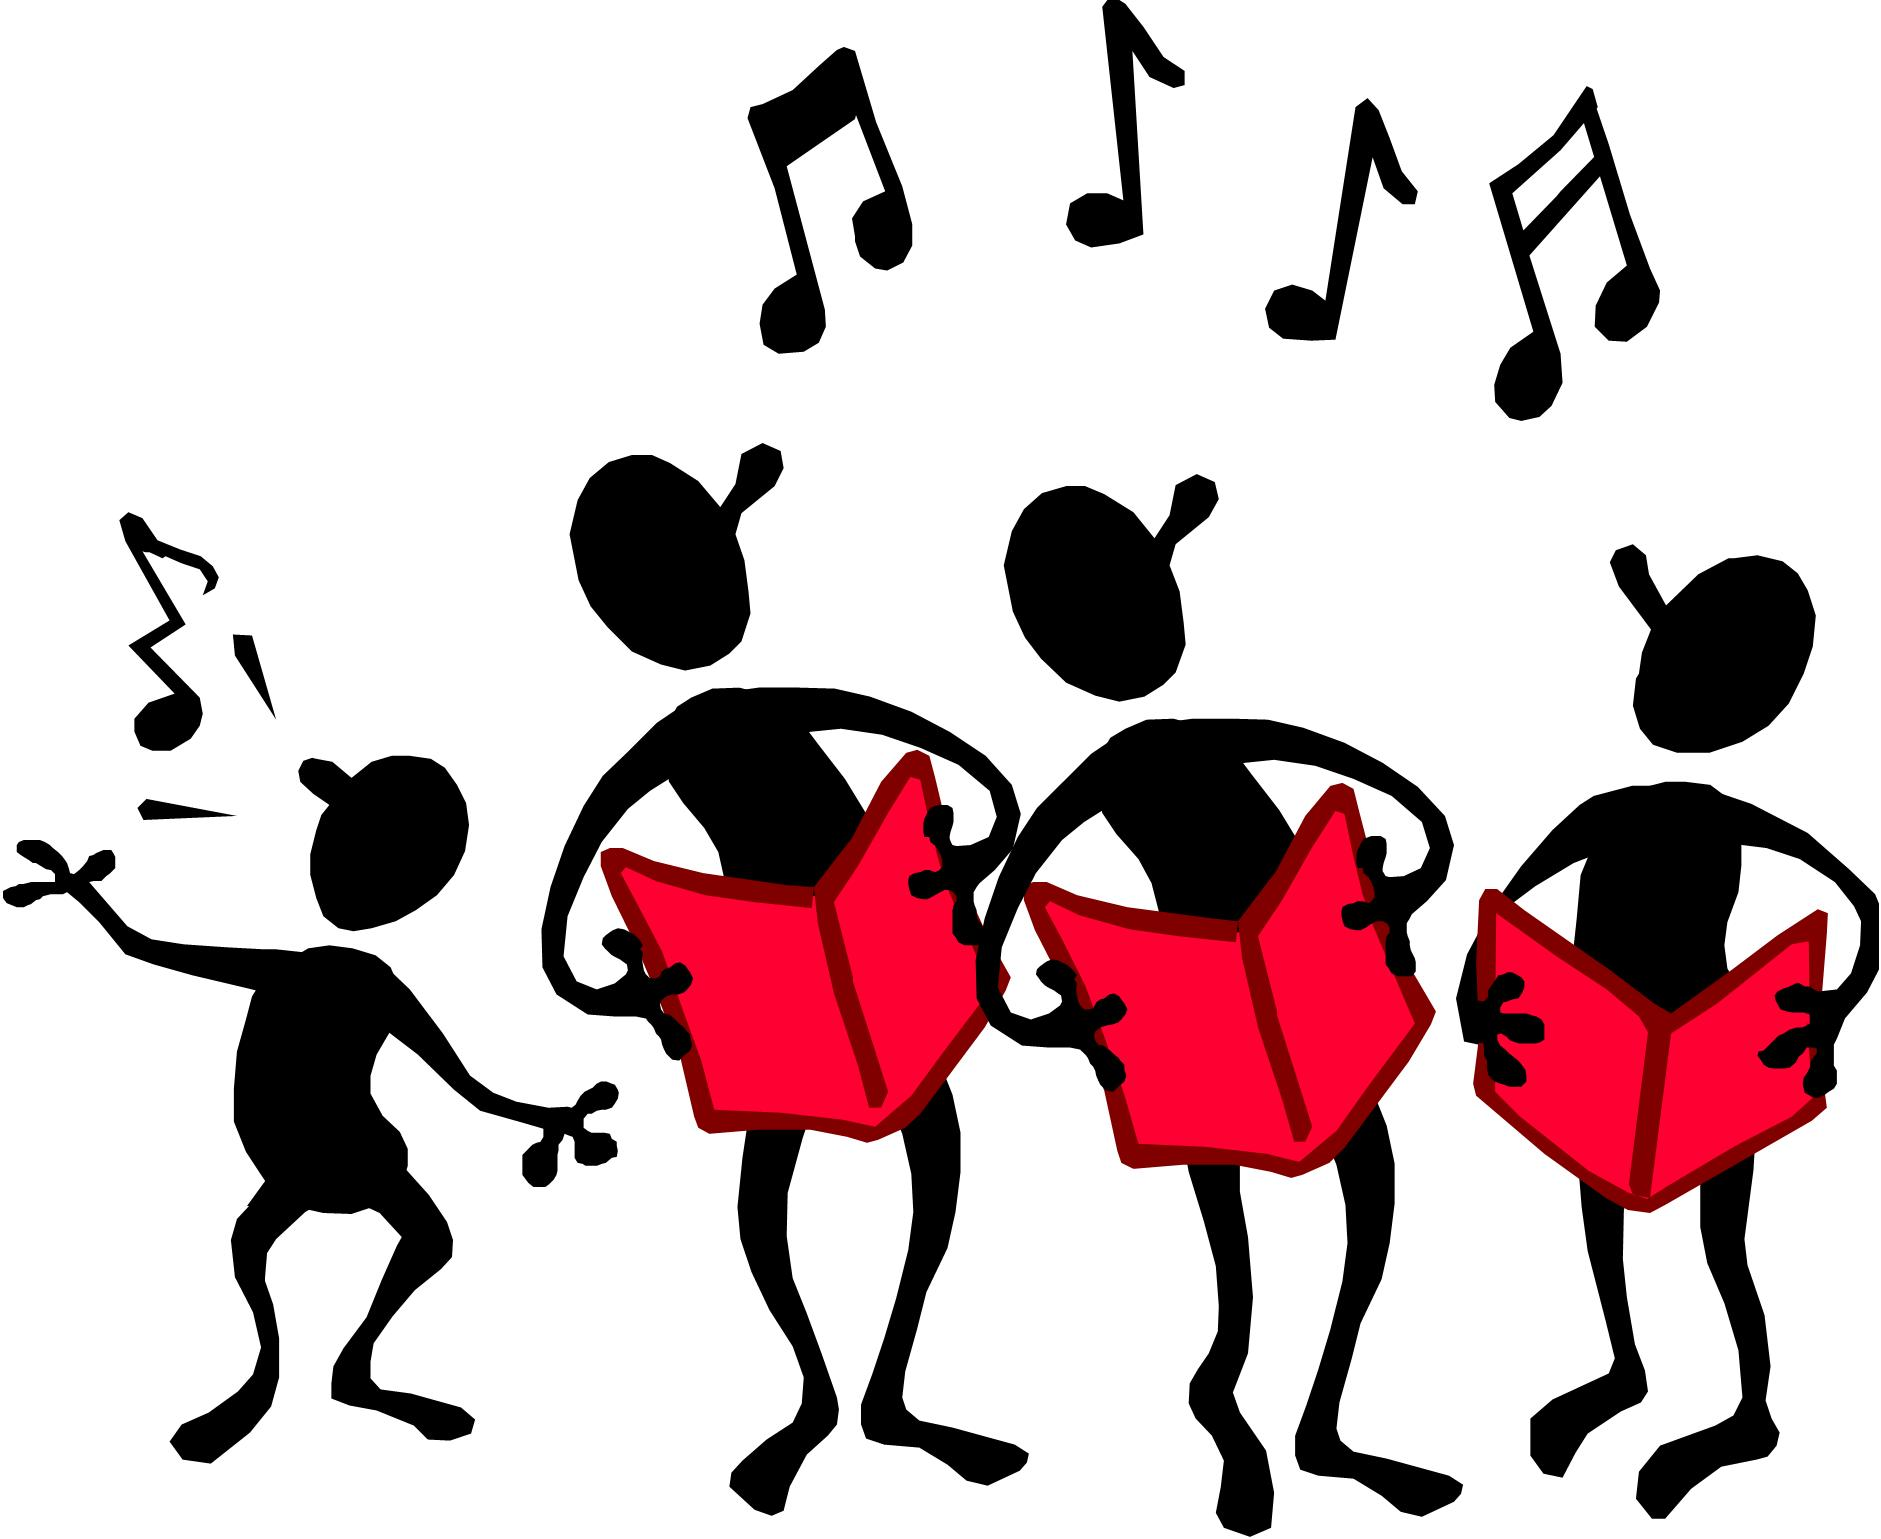 Choir Singing Clip Art Free N2 free image.